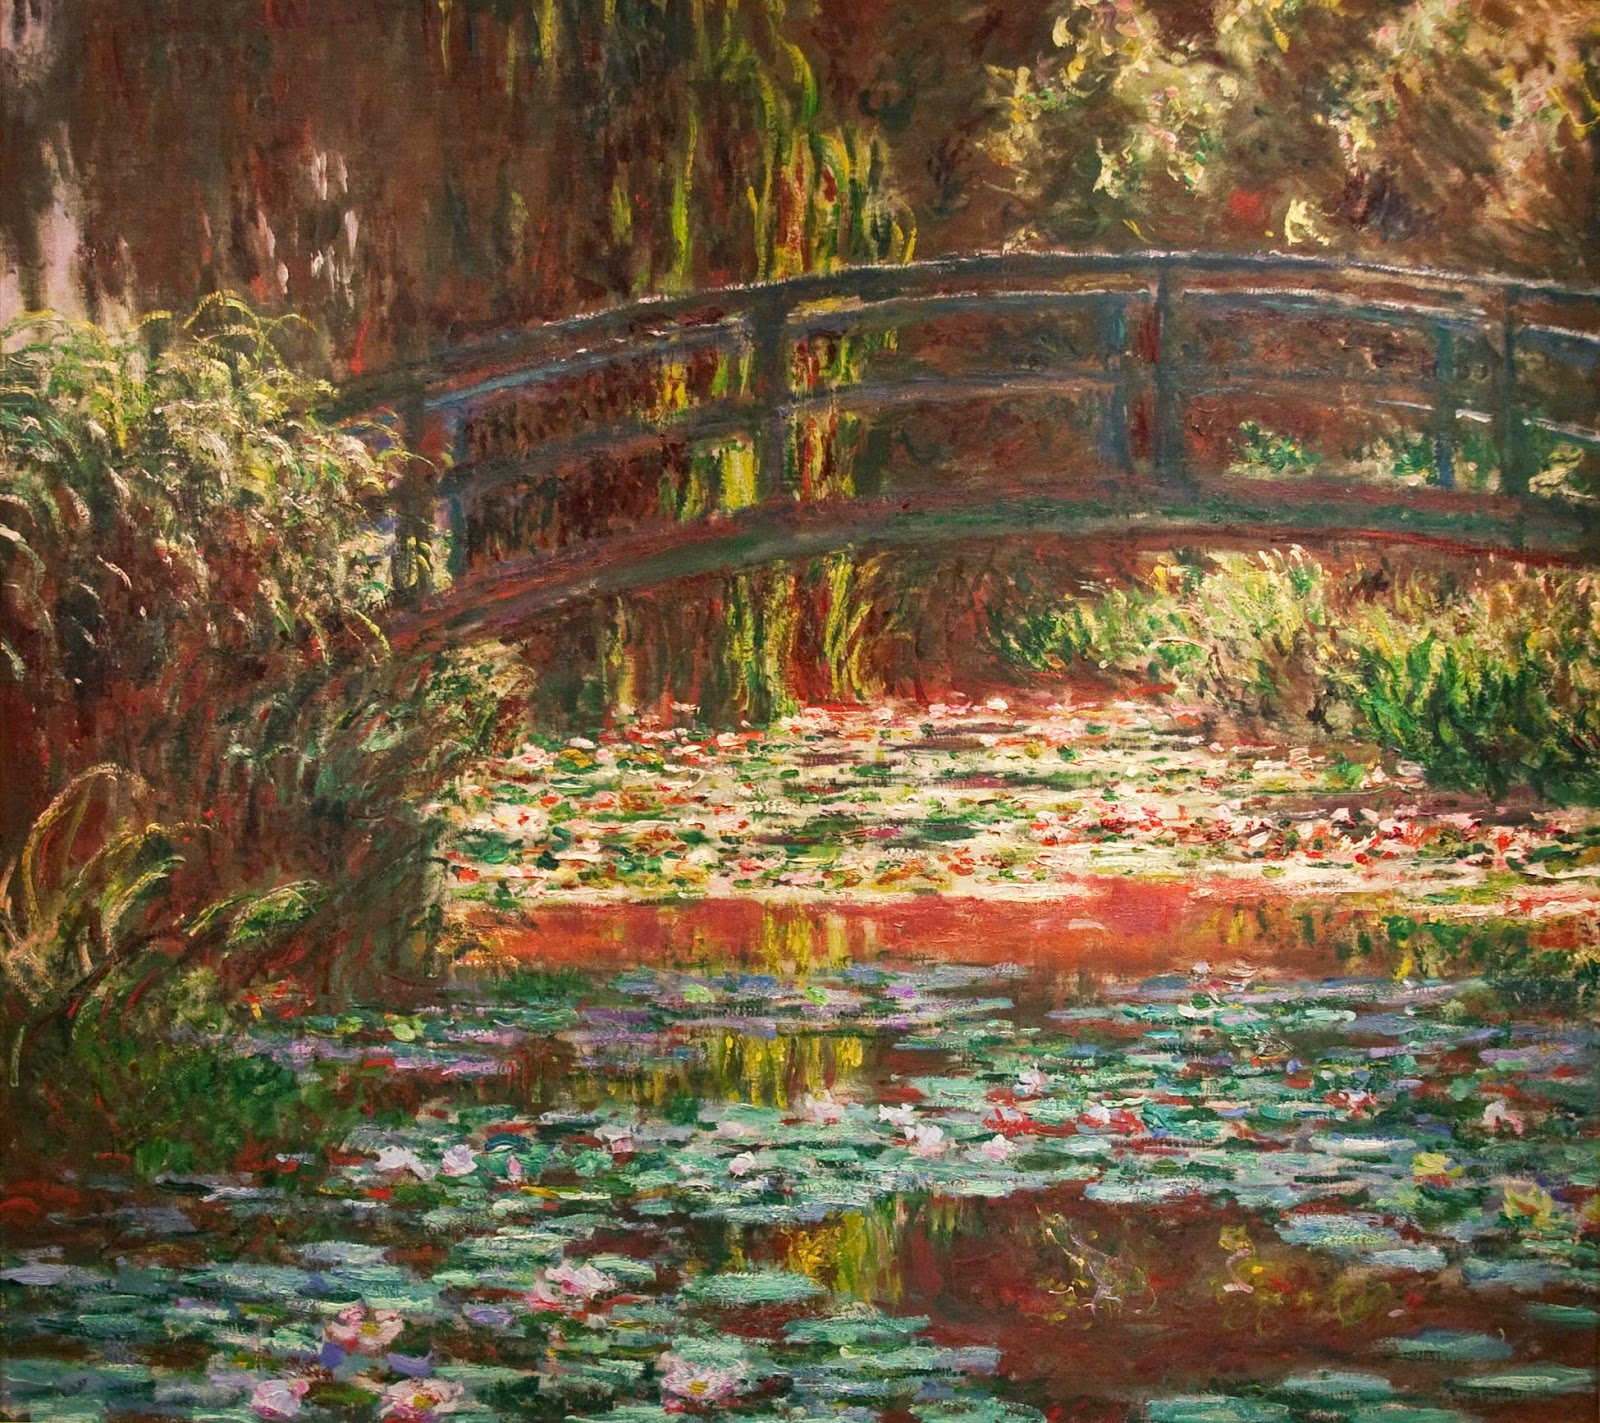 Claude Monet: Water Lily Pond, 1900 (Kent Baldner)